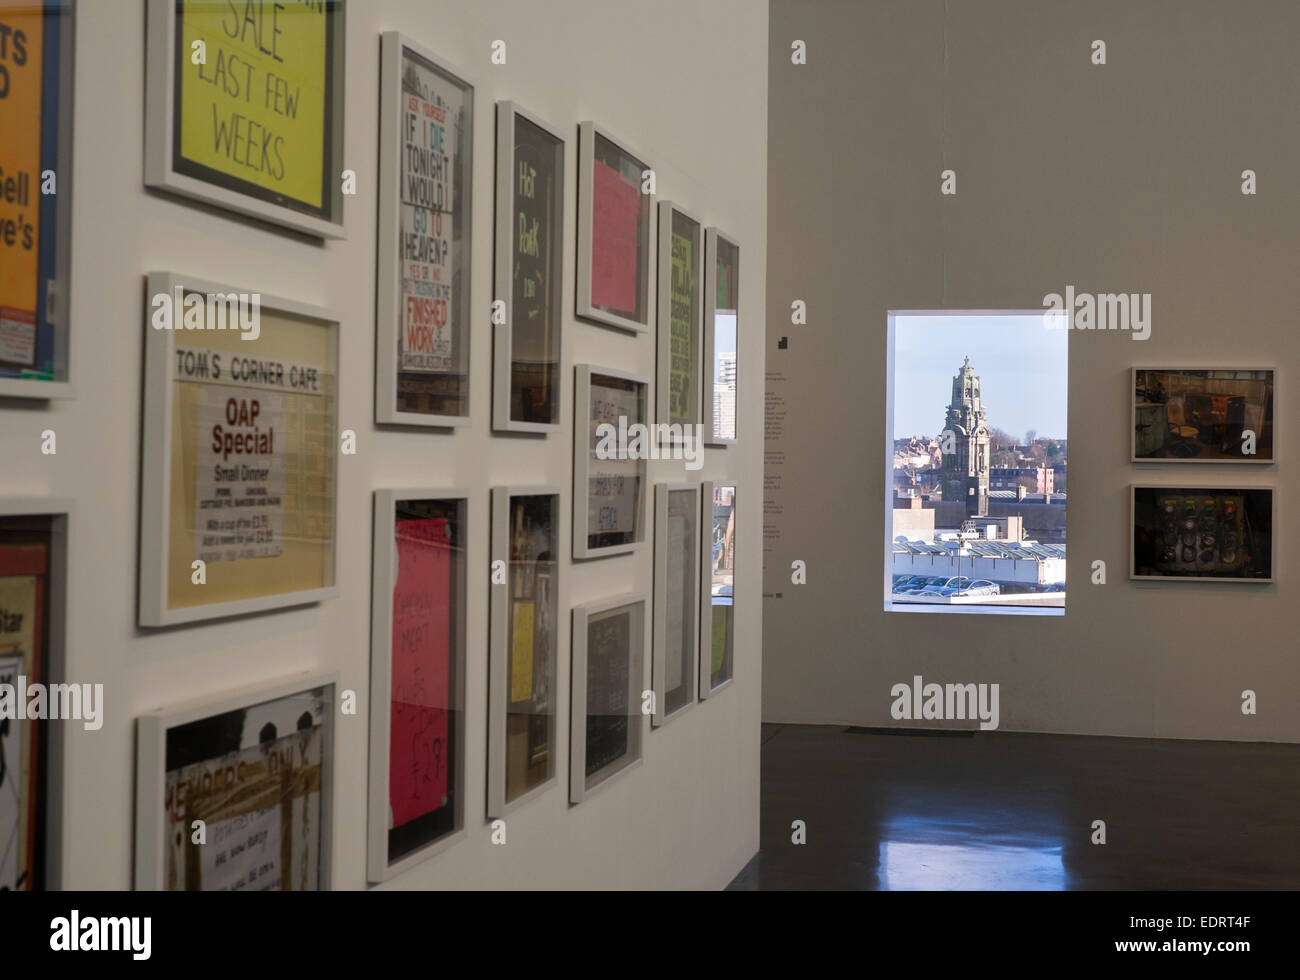 Walsall town hall seen through a window in Walsall art gallery during an exhibition by photographer Martin Parr - Stock Image